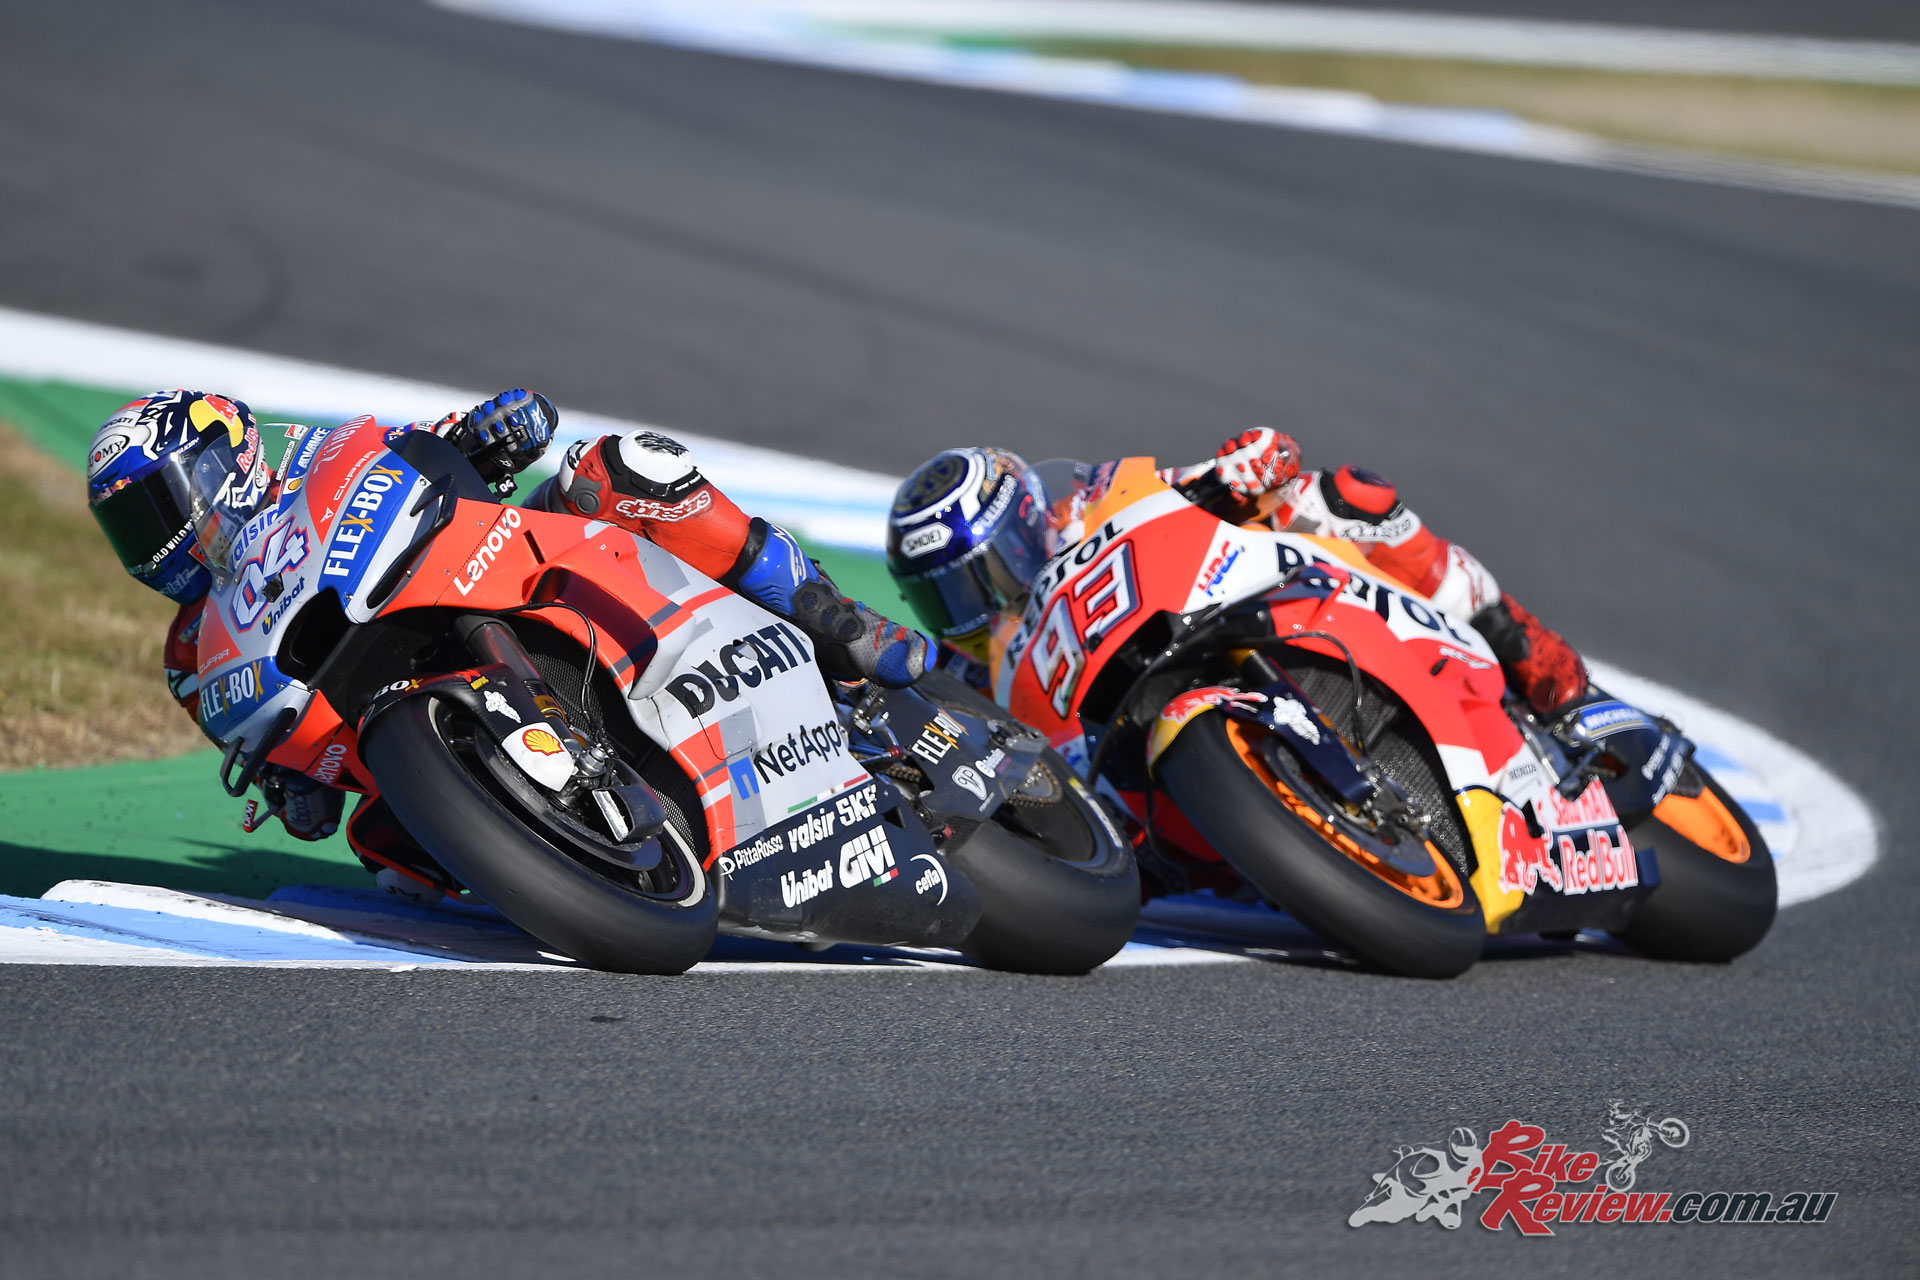 MotoGP of Japan 2018 - Twin Ring Motegi